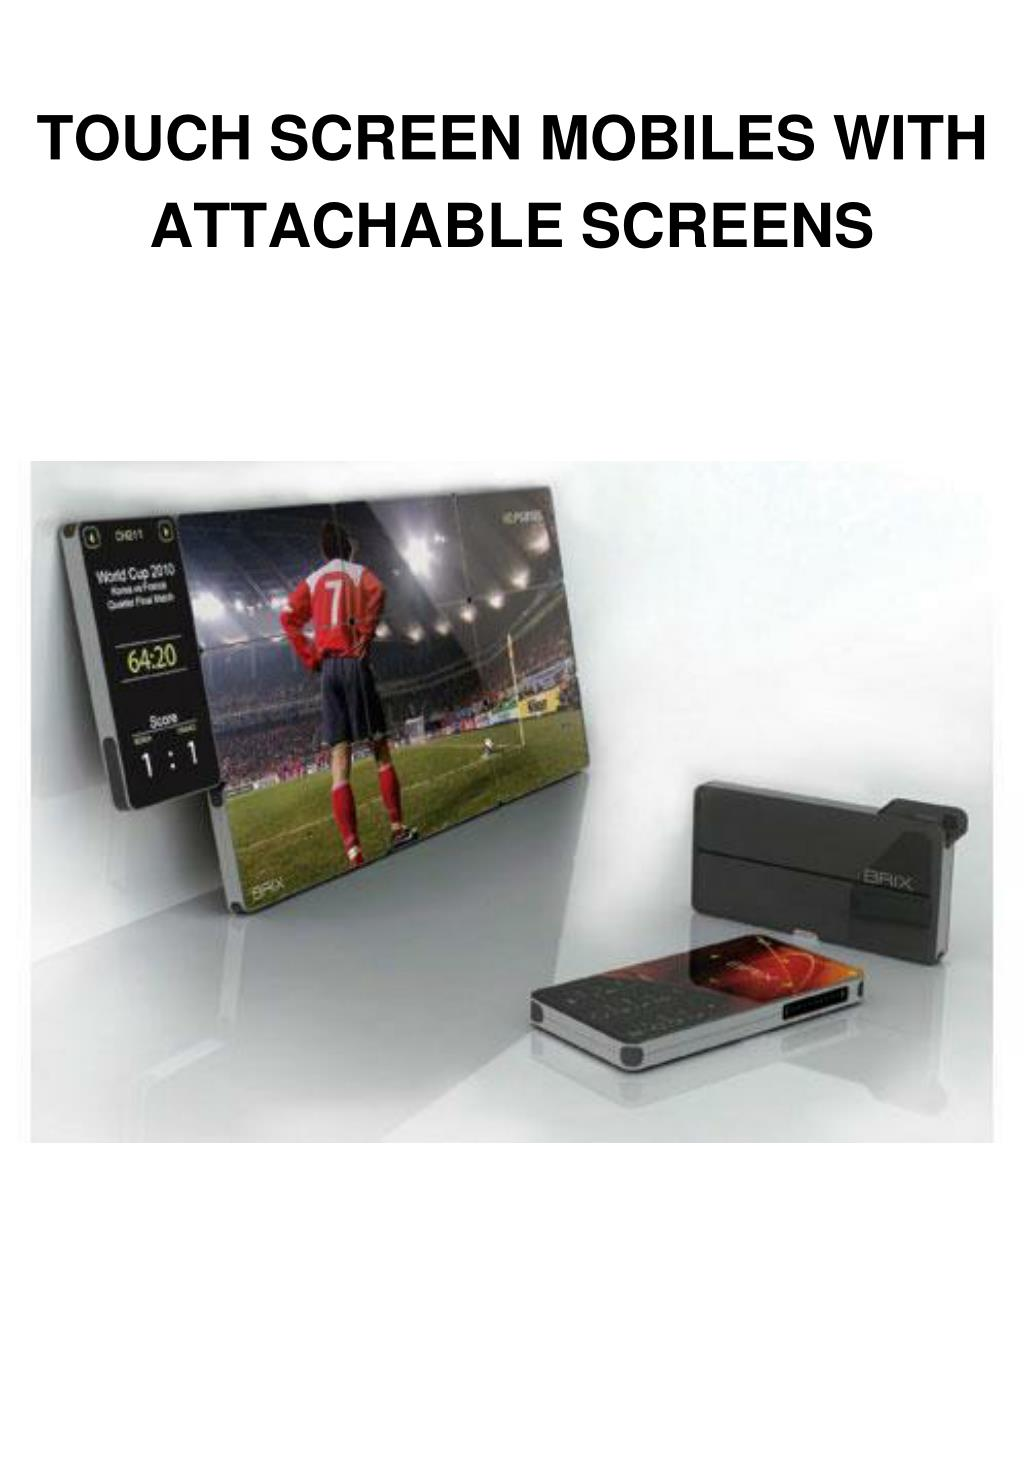 TOUCH SCREEN MOBILES WITH ATTACHABLE SCREENS